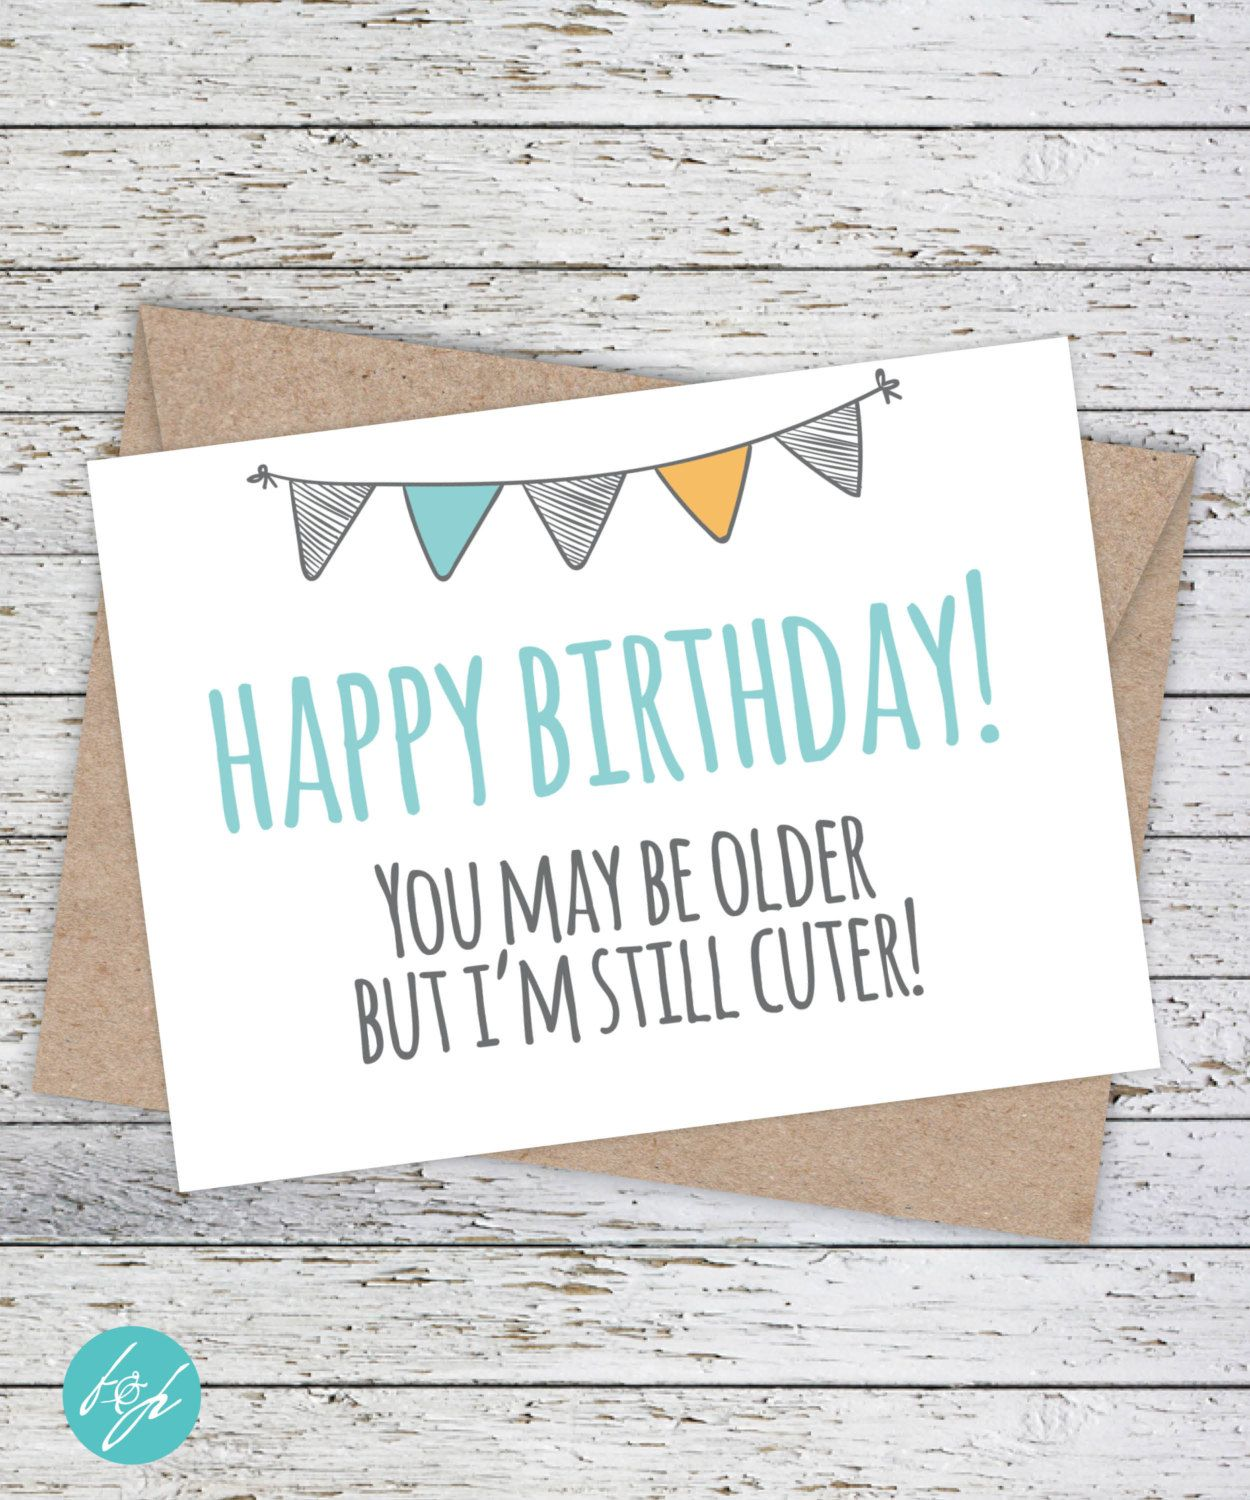 Sister Birthday Card Funny Brother Card Birthday Card Older Sister Big Brother Funny Ca Birthday Cards For Brother Sister Birthday Card Funny Birthday Cards